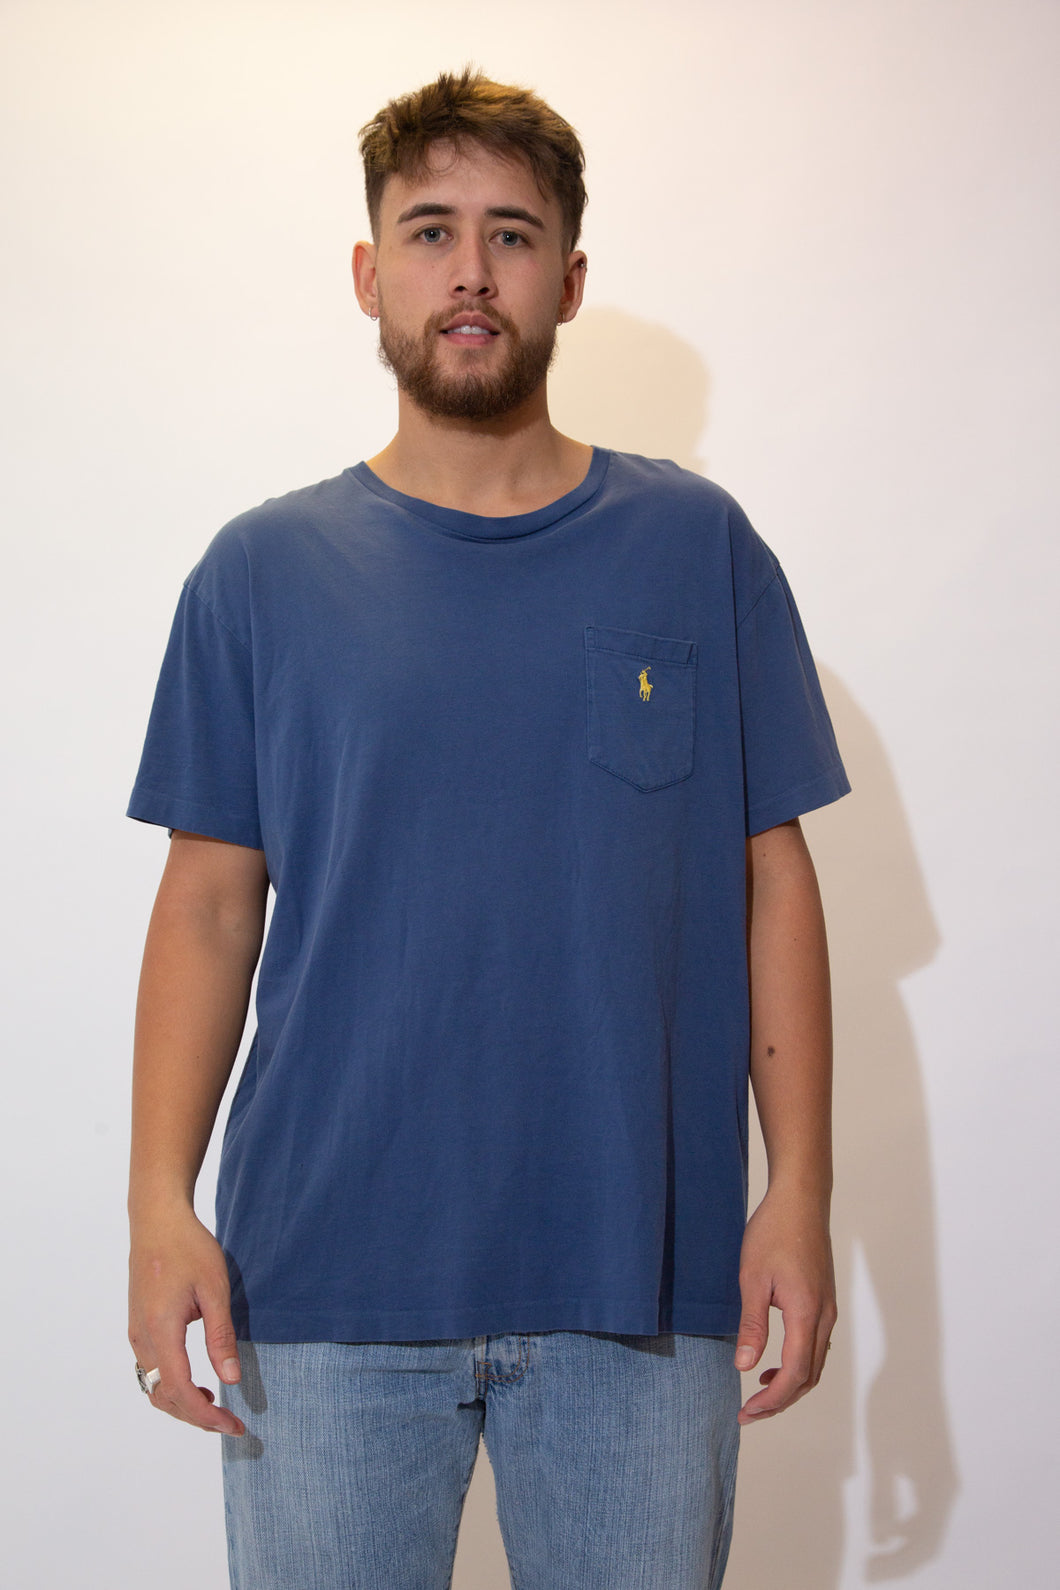 Blue single stitch tee with a yellow Ralph Lauren logo on the left chest pocket. Pair with a dark wash jeans and Jordans for a chill fit!